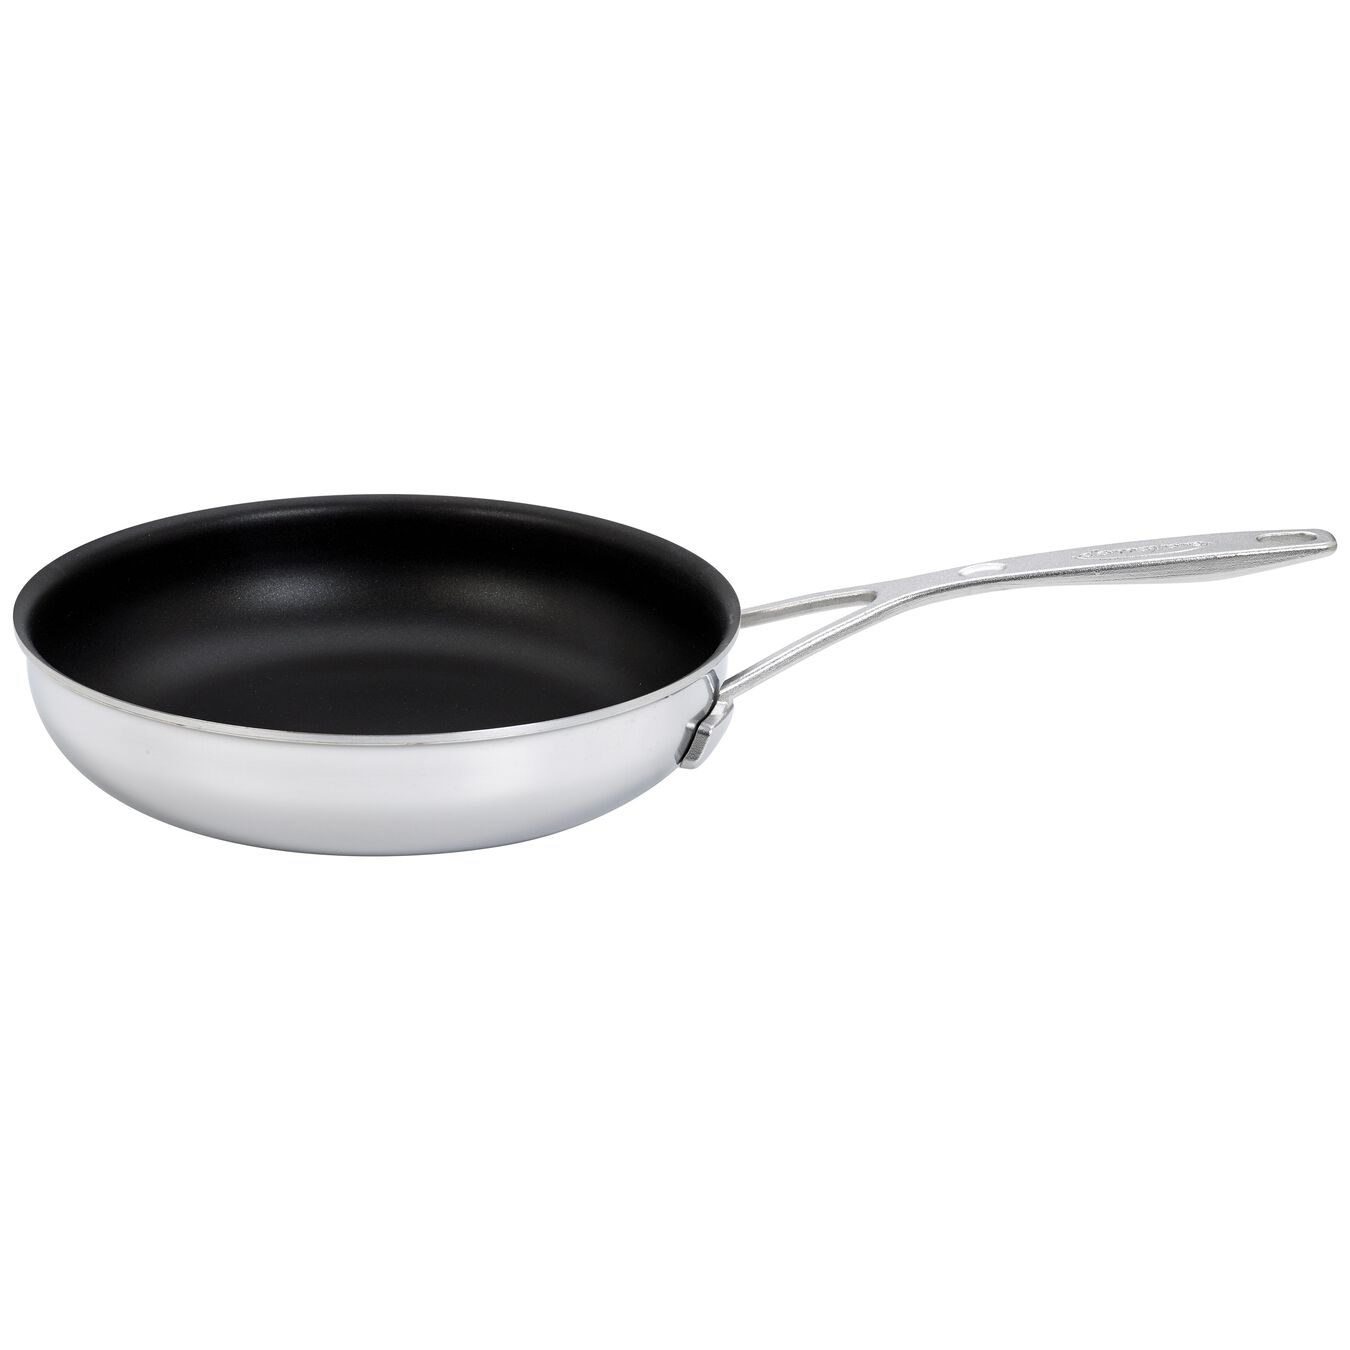 9.5-inch Stainless Steel Traditional Nonstick Fry Pan,,large 1